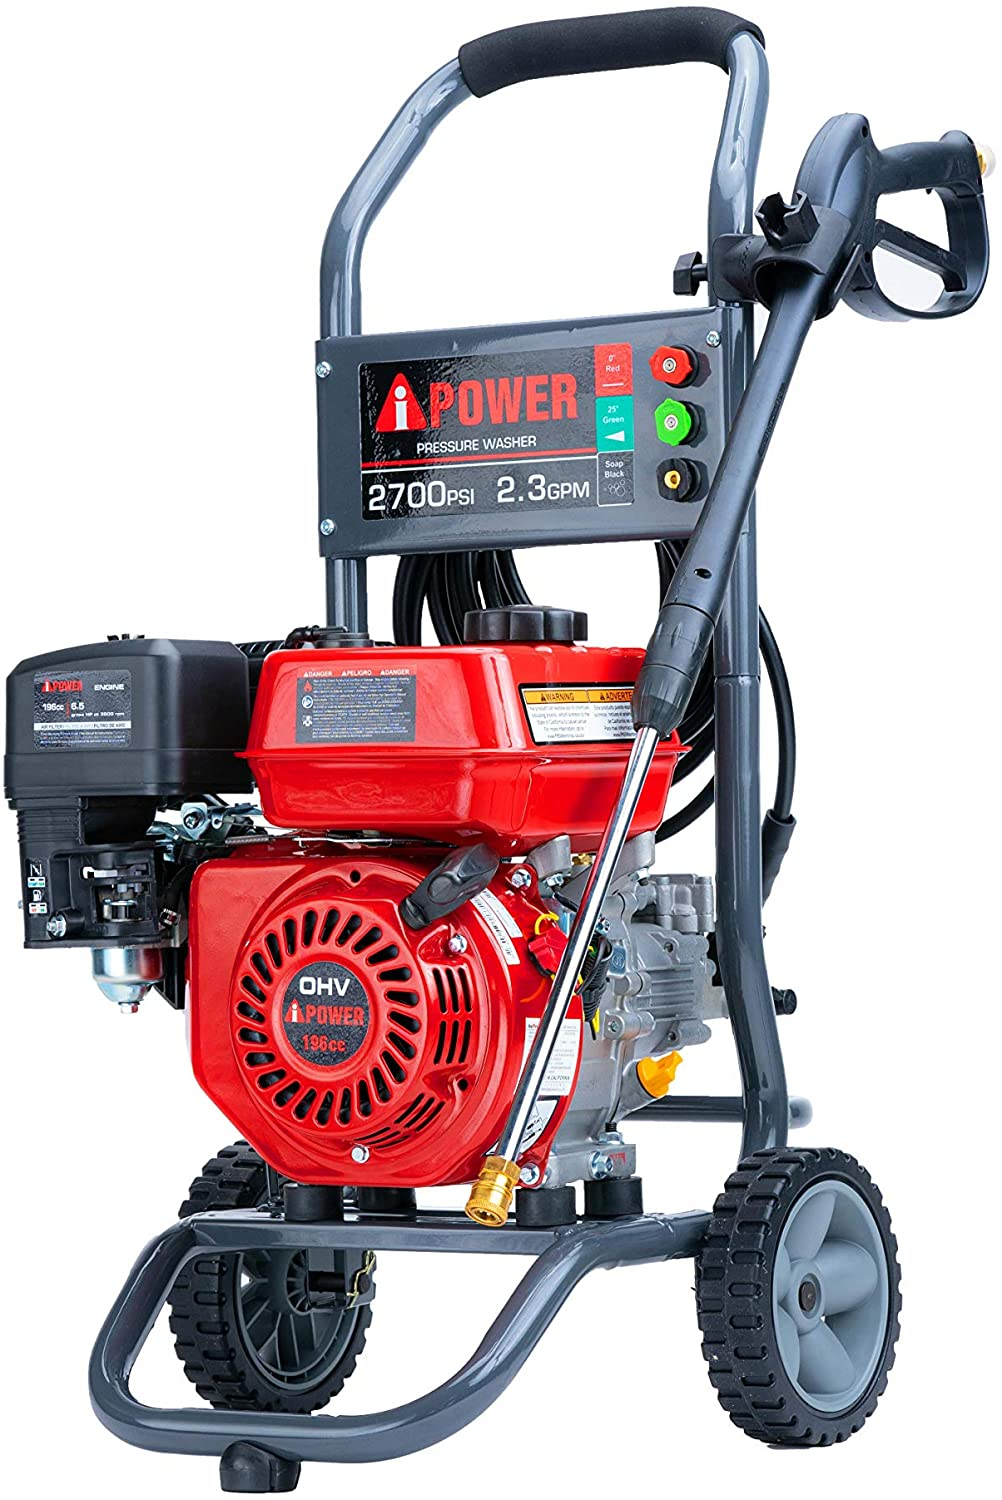 A-iPower APW2700C 2700 PSI Gas Pressure Washer